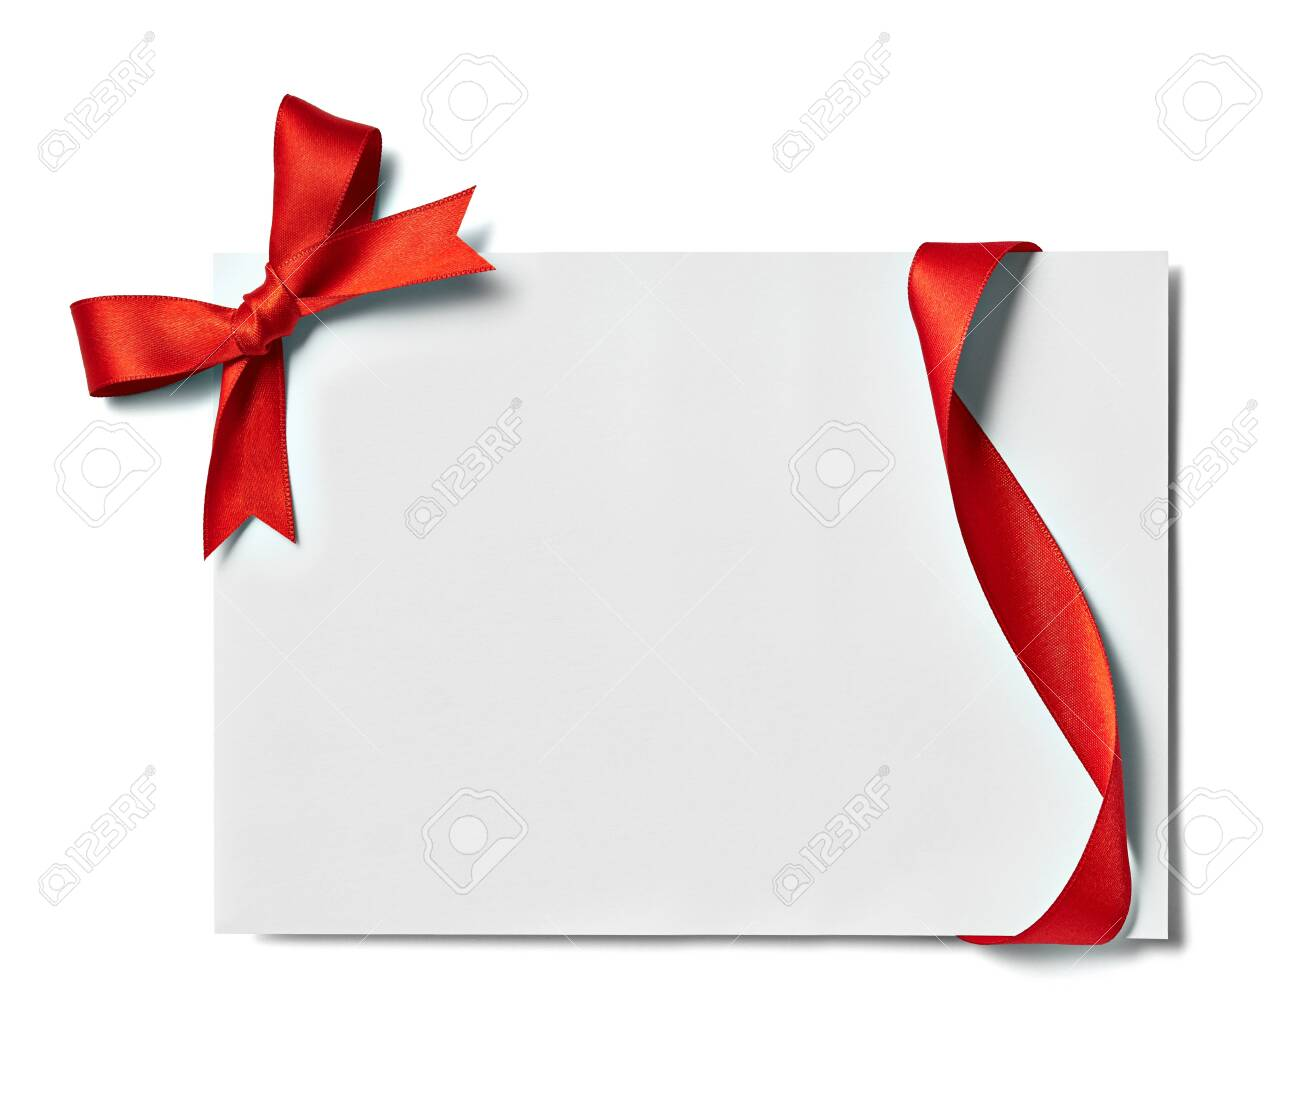 close up of a note card with red ribbon bow on white background - 134101877